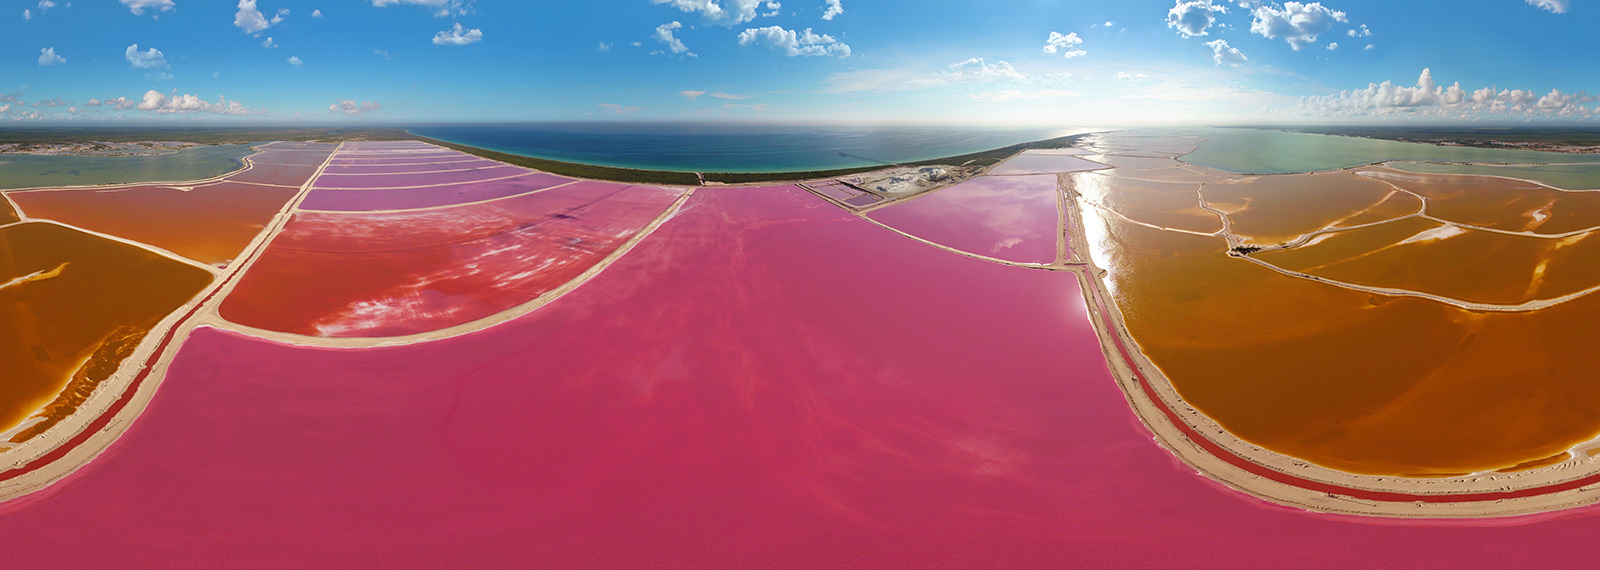 Las Coloradas, Rio Lagartos, Yucatan - Virtual tour